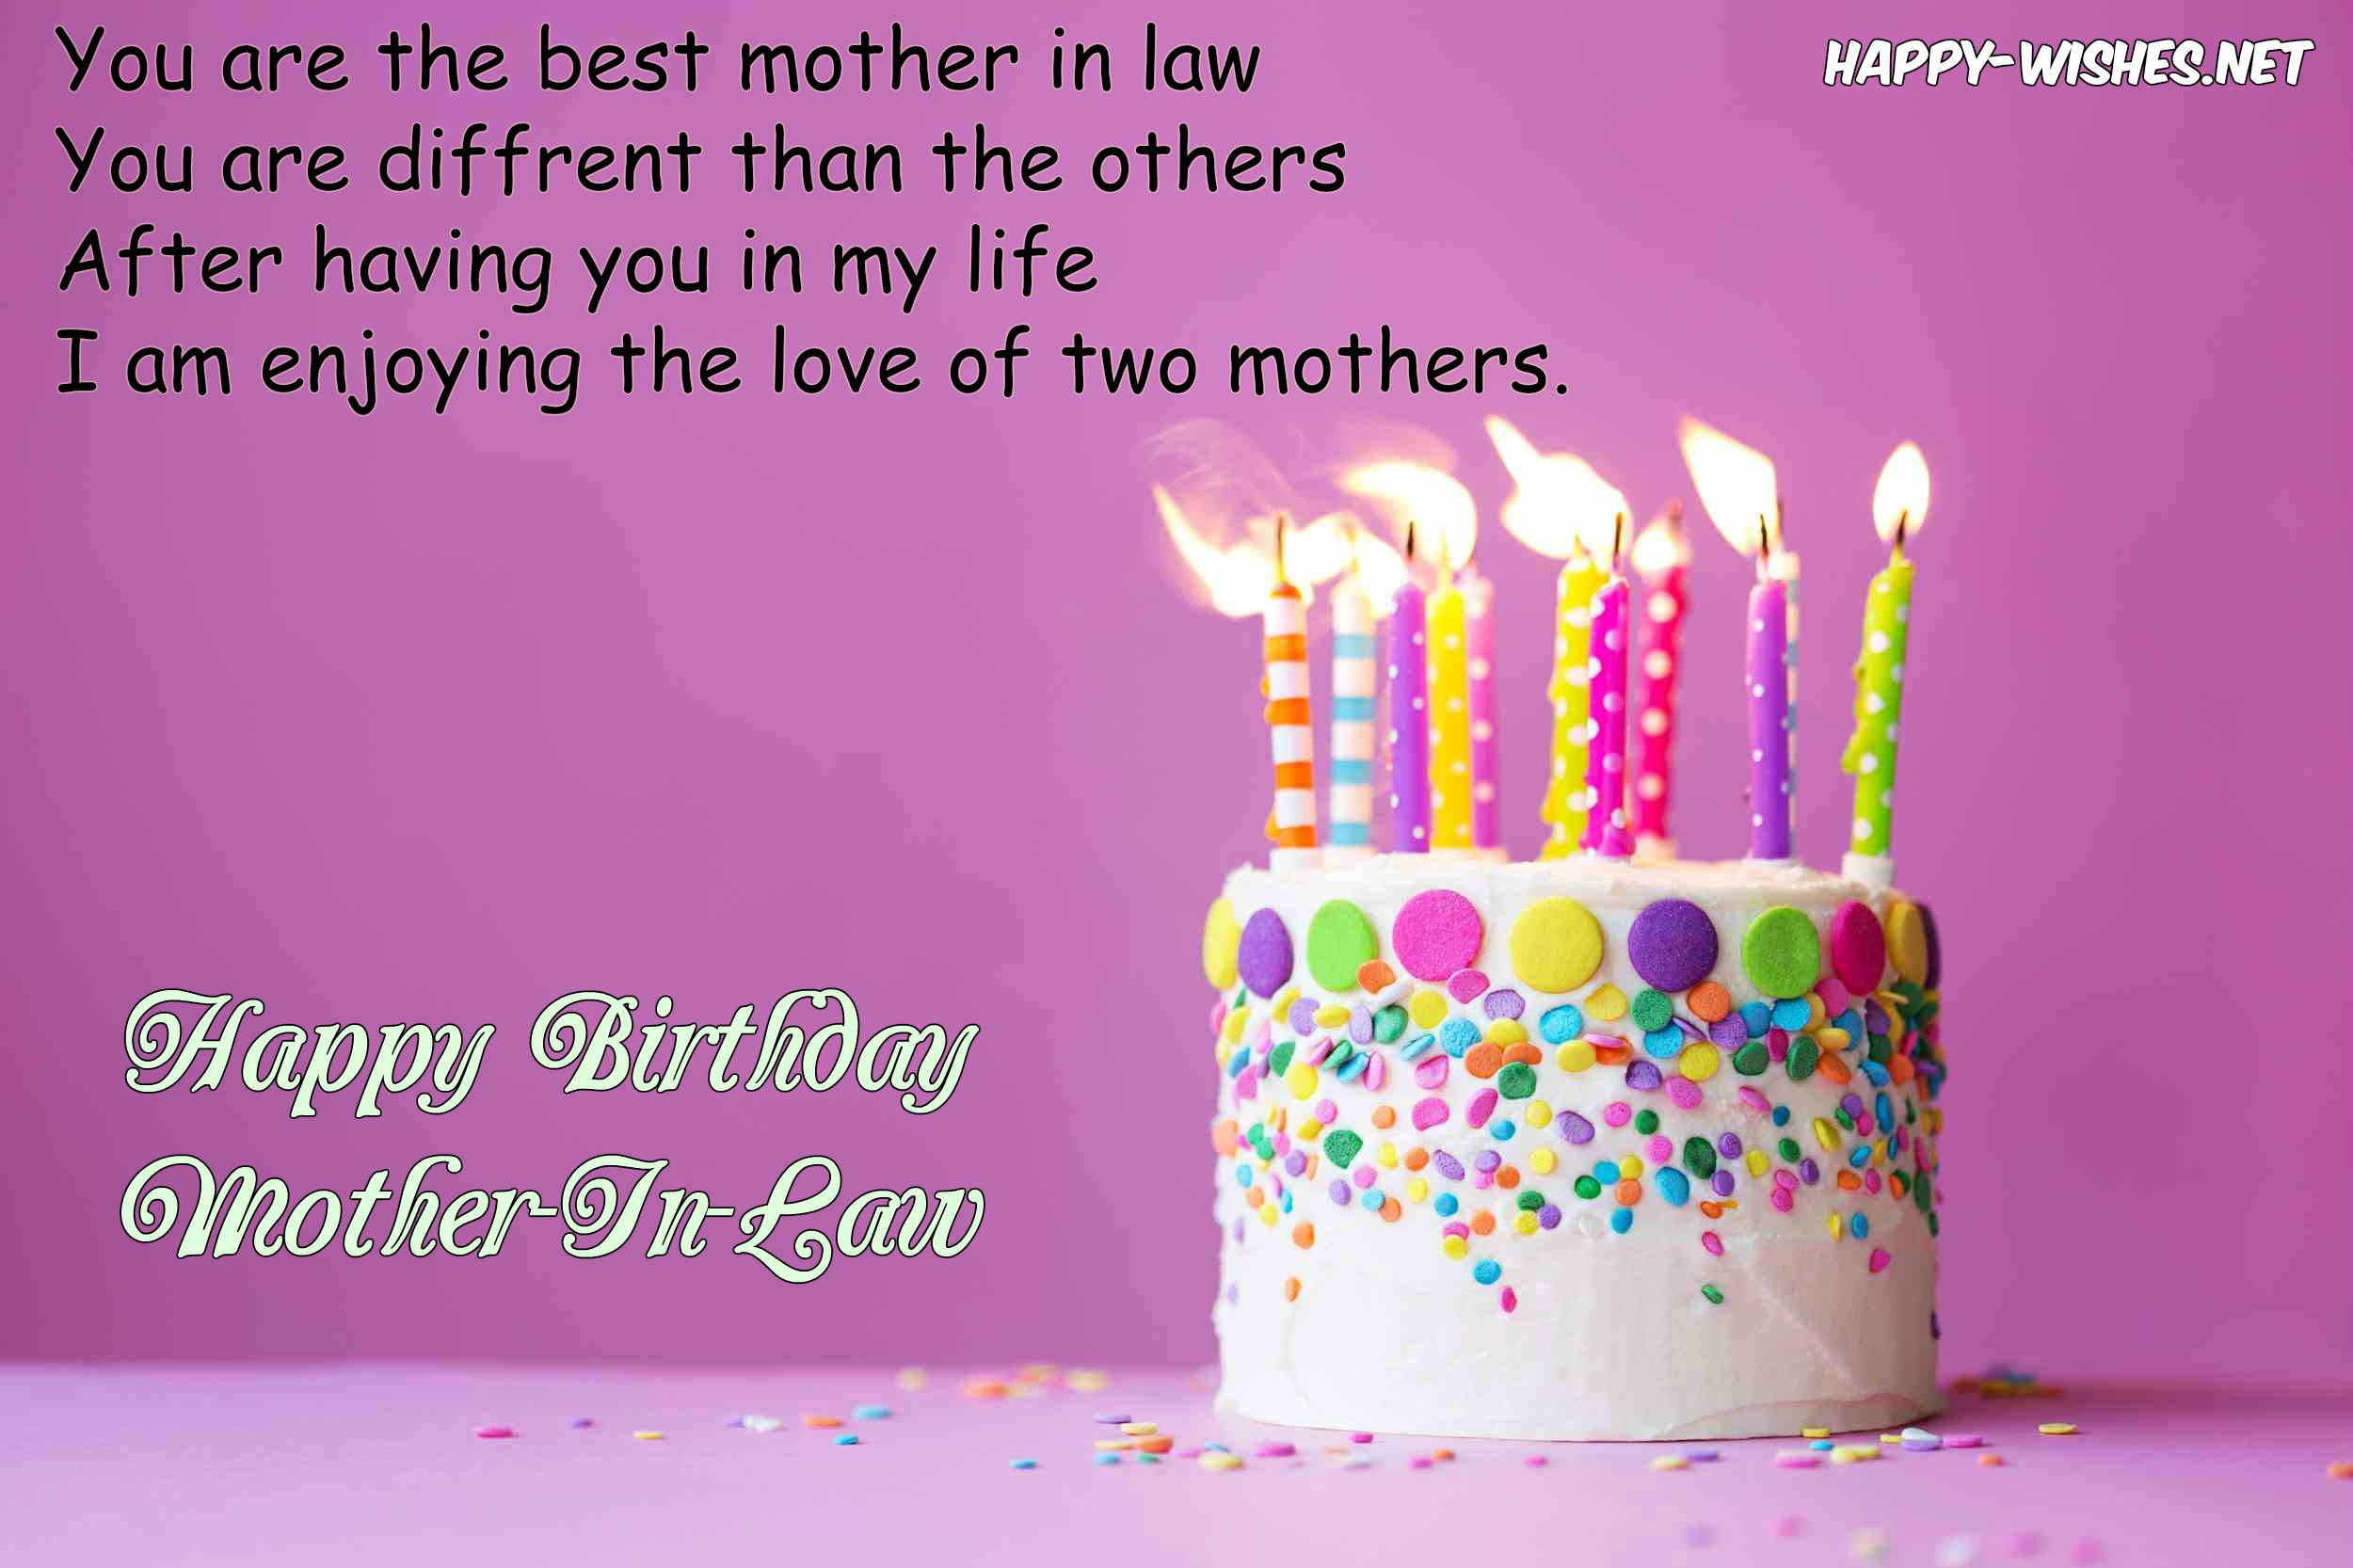 happy birthday message to mom in law ; 8HappyBirthdaywishesformother-in-law-compressed